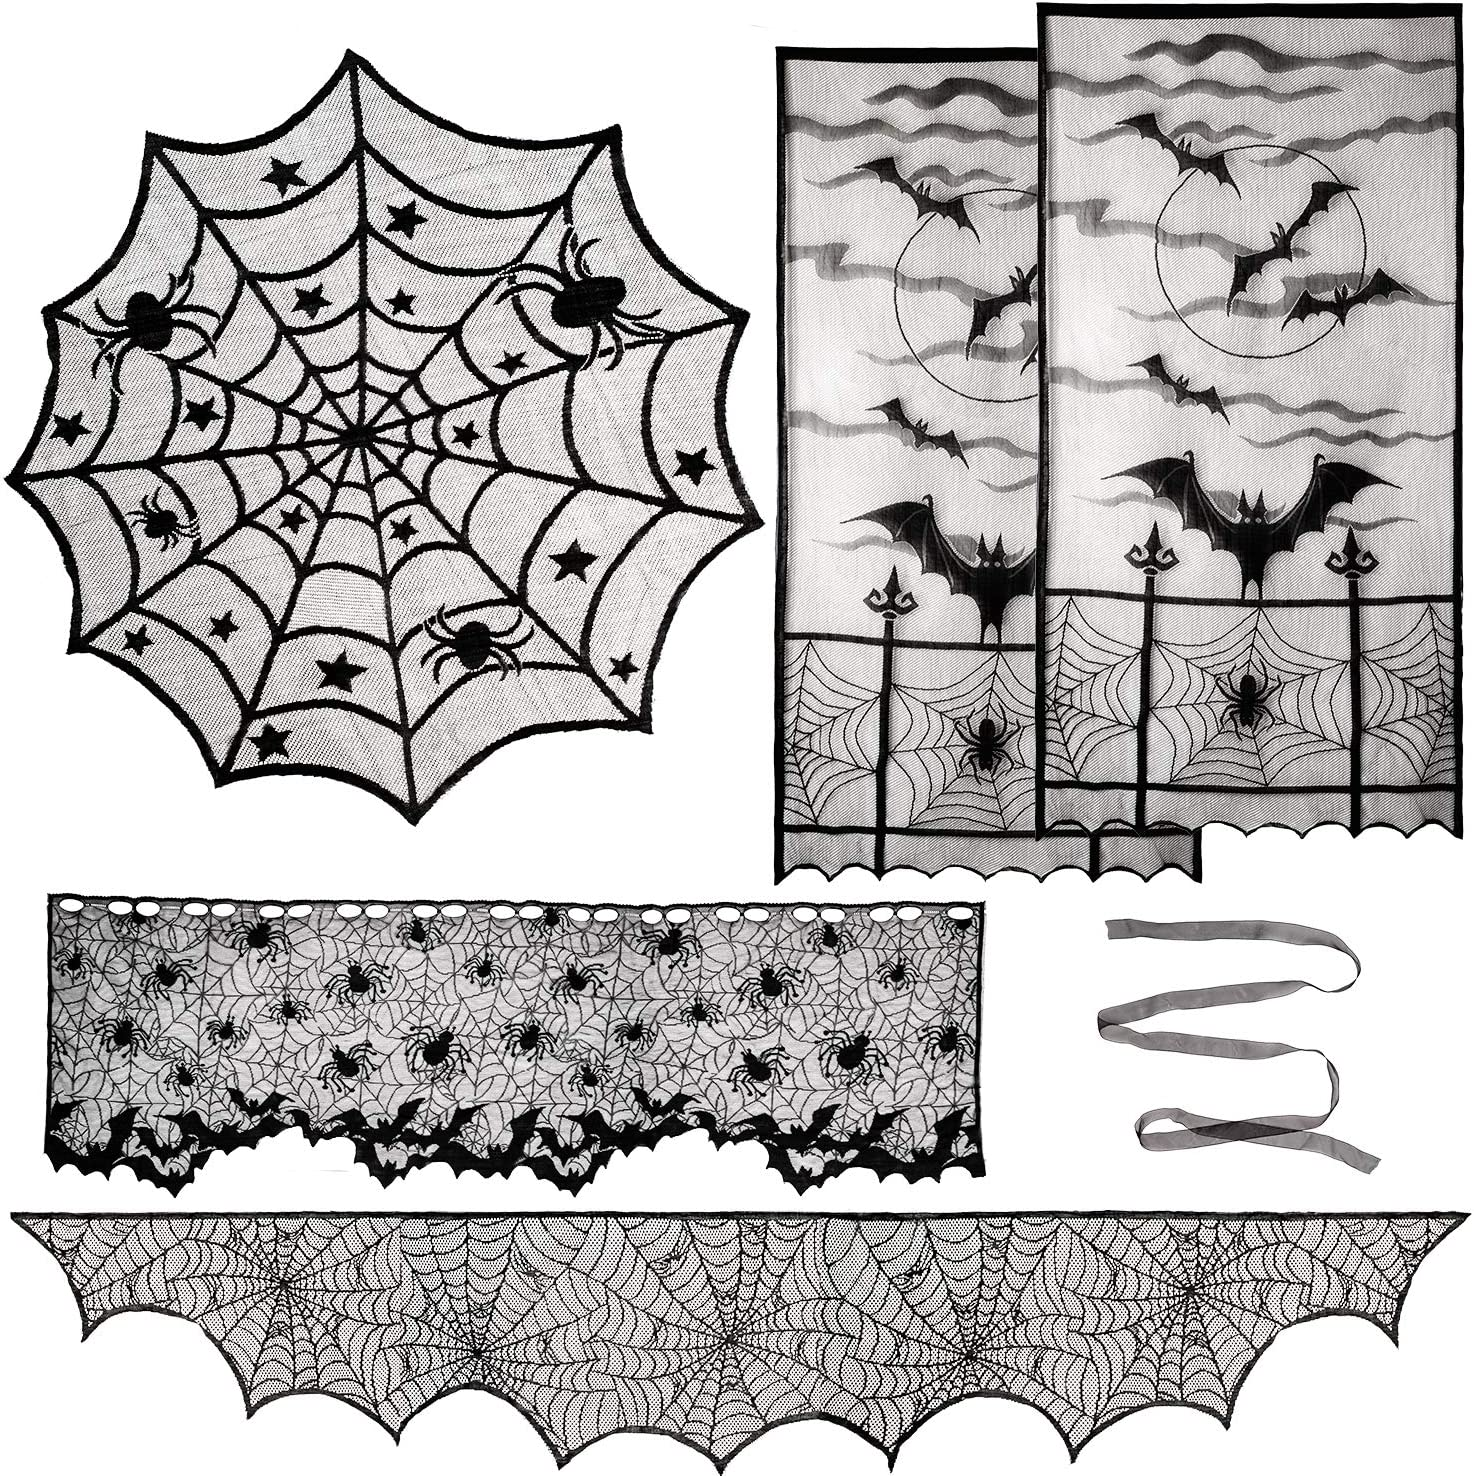 12x12 Buy One Get One Free 5-Pack Victorian Gothic Window Cling CGSignLab